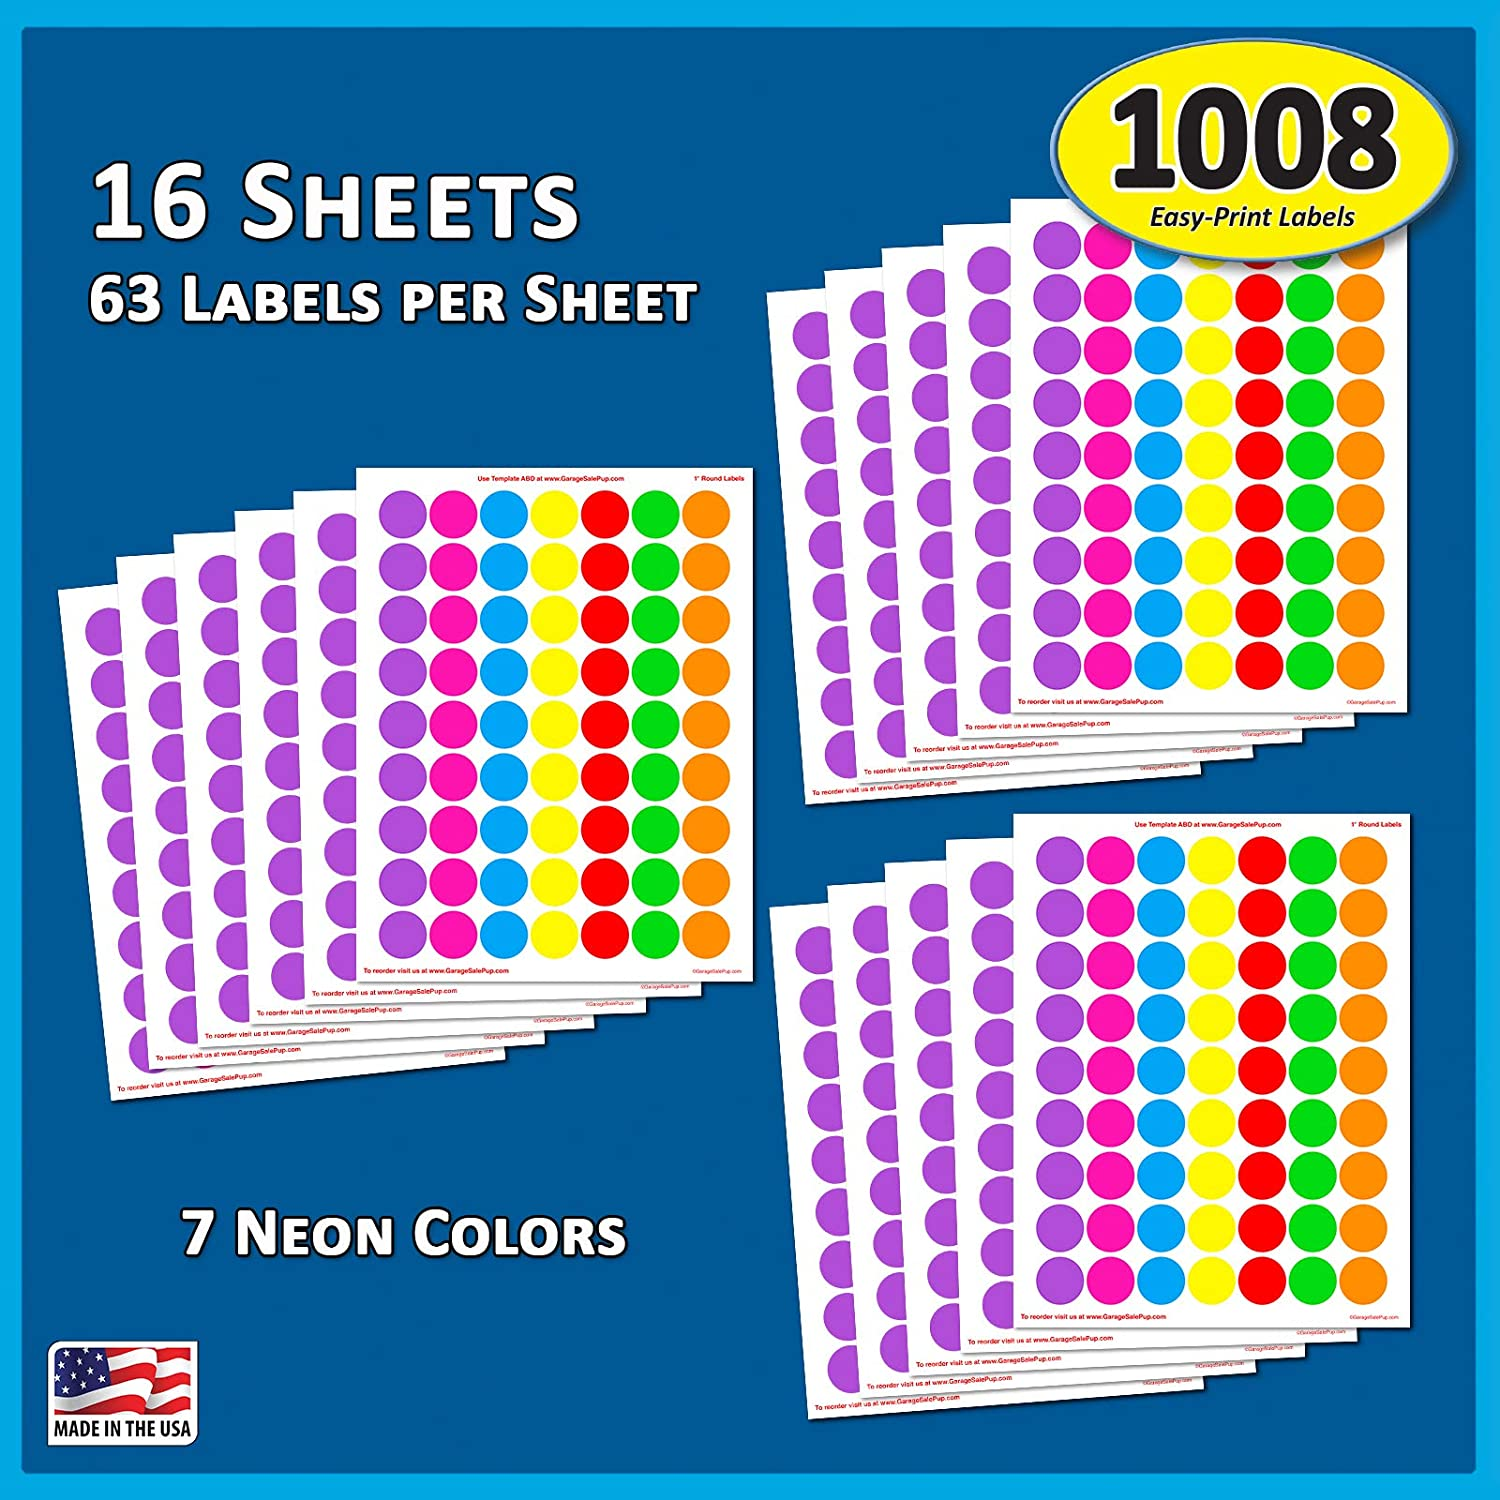 """Pack of 1008 1-inch Diameter Round Color Coding Dot Labels, 7 Bright Neon Colors, 8 1/2"""" x 11"""" Sheet, Fits All Laser/Inkjet Printers, 63 Labels per Sheet, 1"""" : Office Products"""